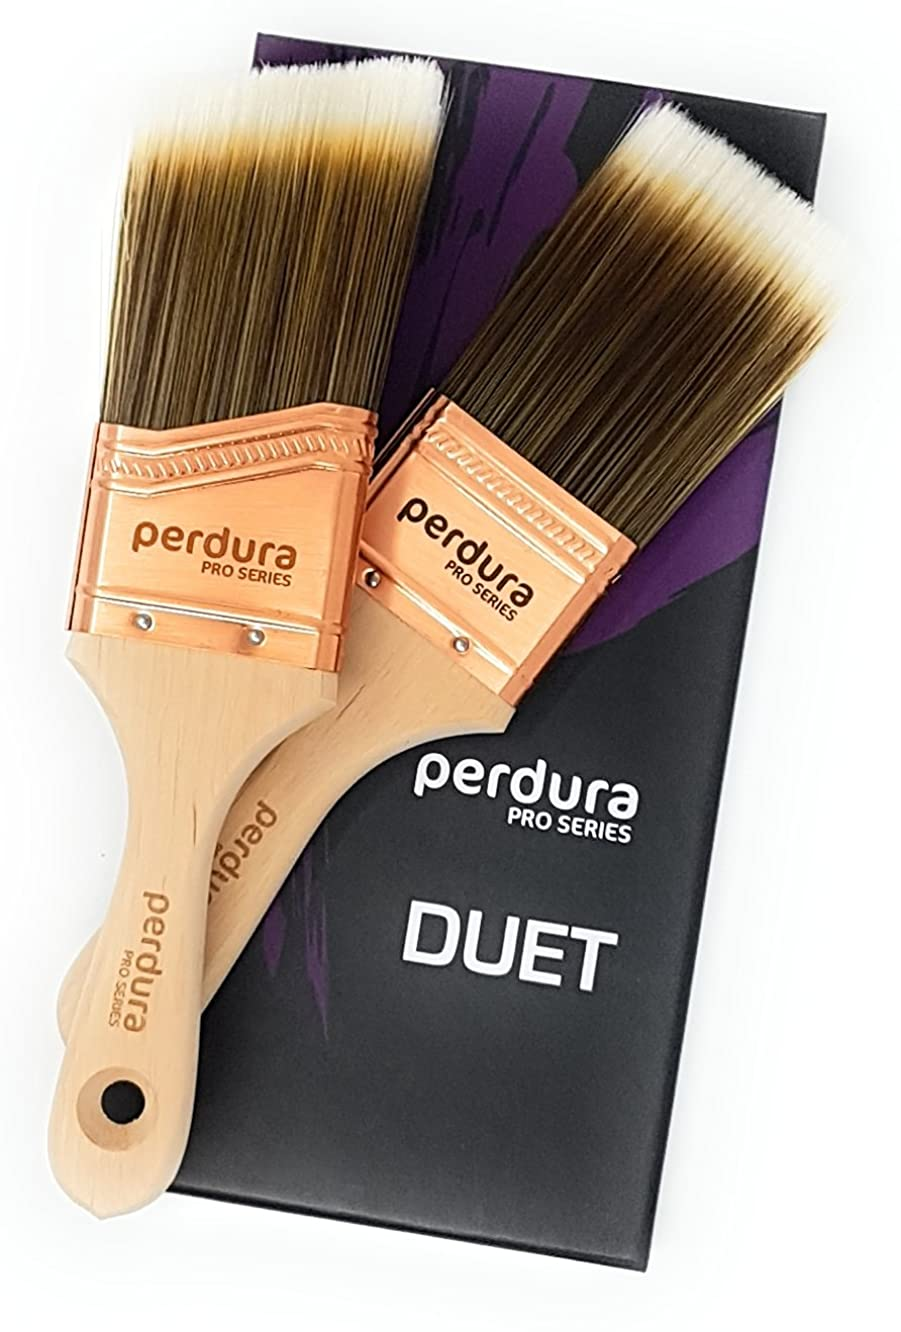 Perdura Duet Sash Trim Paint Brush Twin Pack - 2 inch Professional Quality Flat and Angled Brushes for Cutting Trim and Detail Work - Water and Oil Based Paints - Contractor or DIY - Home Art + Craft